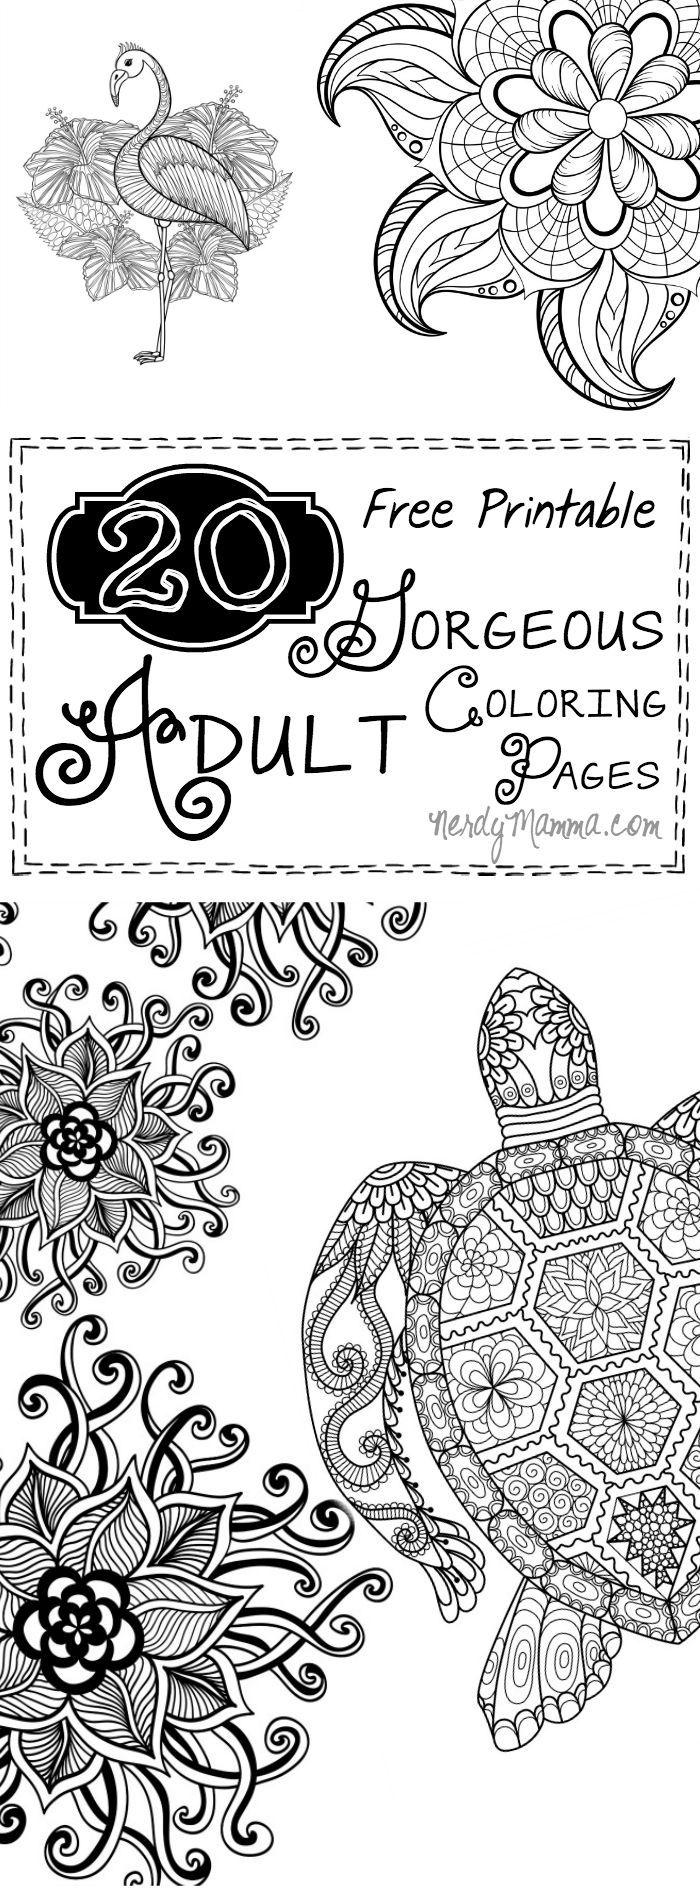 Rainbow magic weather fairies coloring pages - 20 Gorgeous Free Printable Adult Coloring Pages